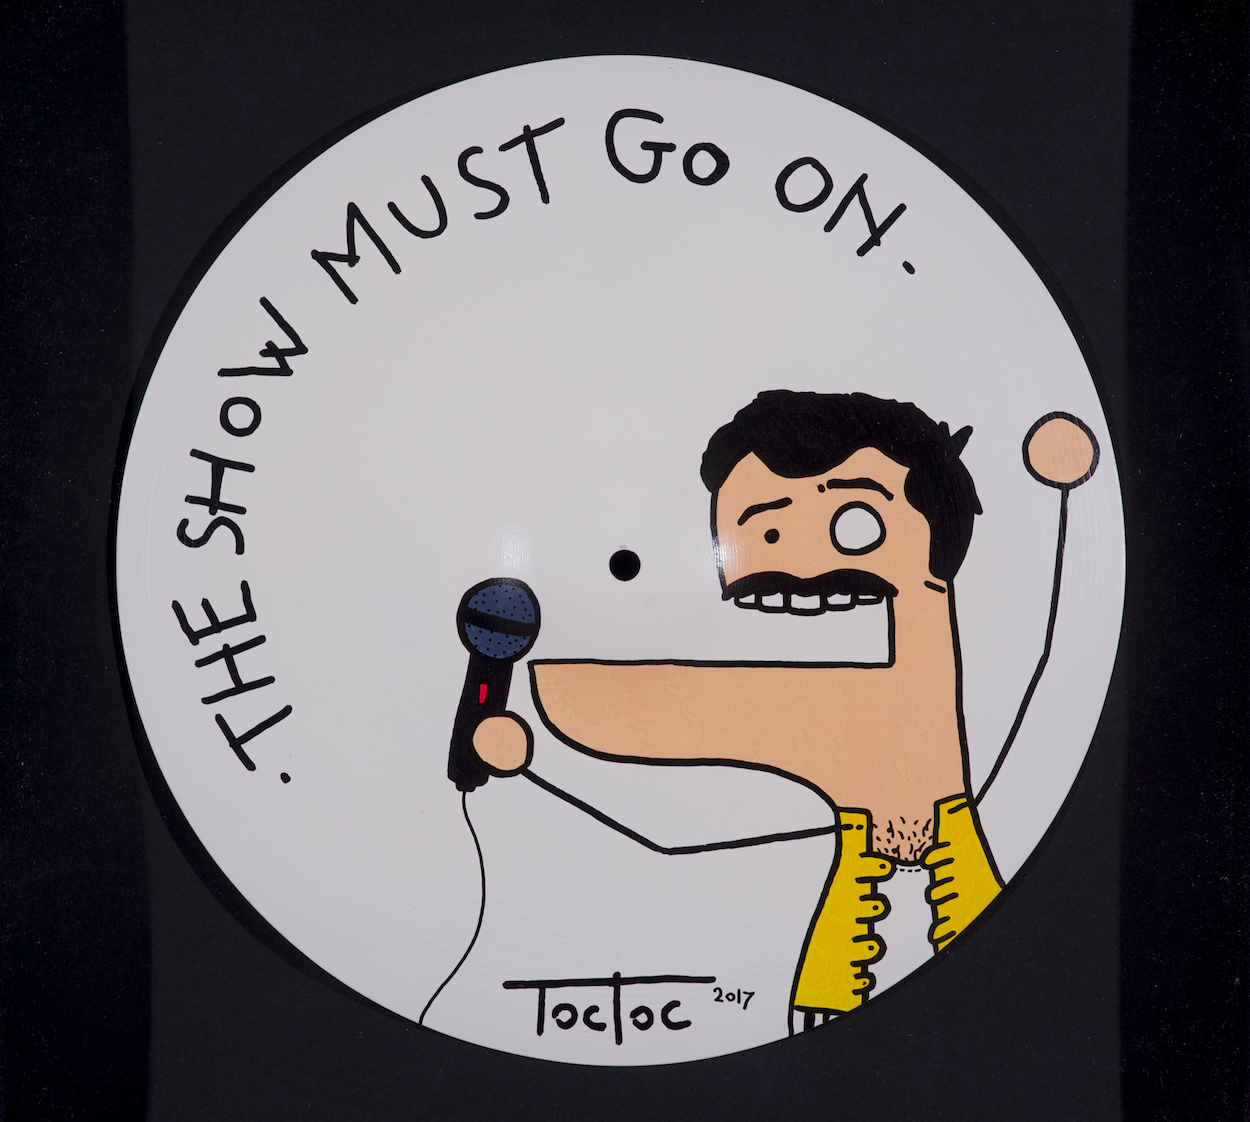 Toctoc-The show must go on-2017